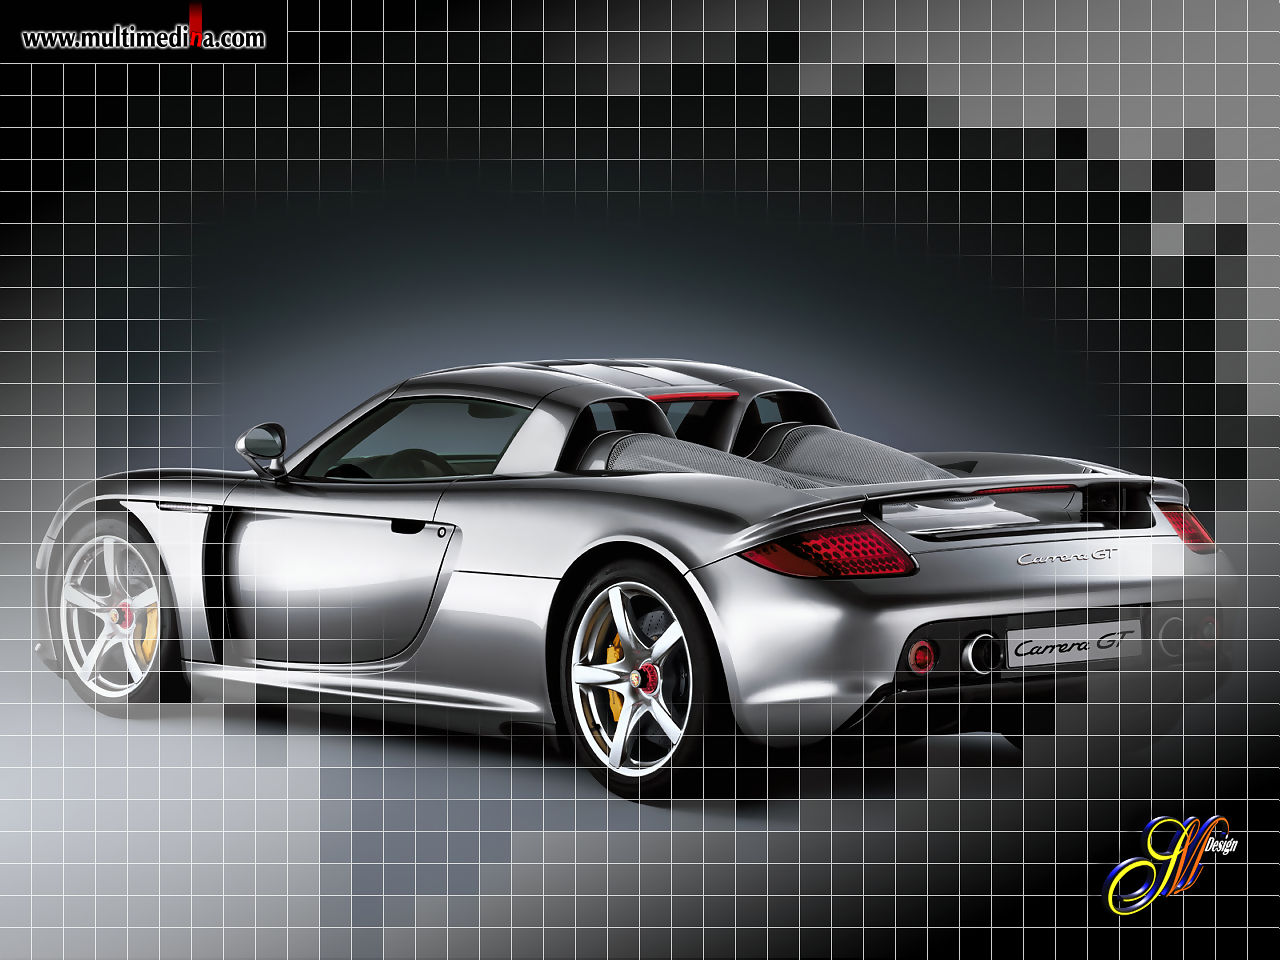 HD car Wallpapers is the no1 source of Car wallpapers 1280x960